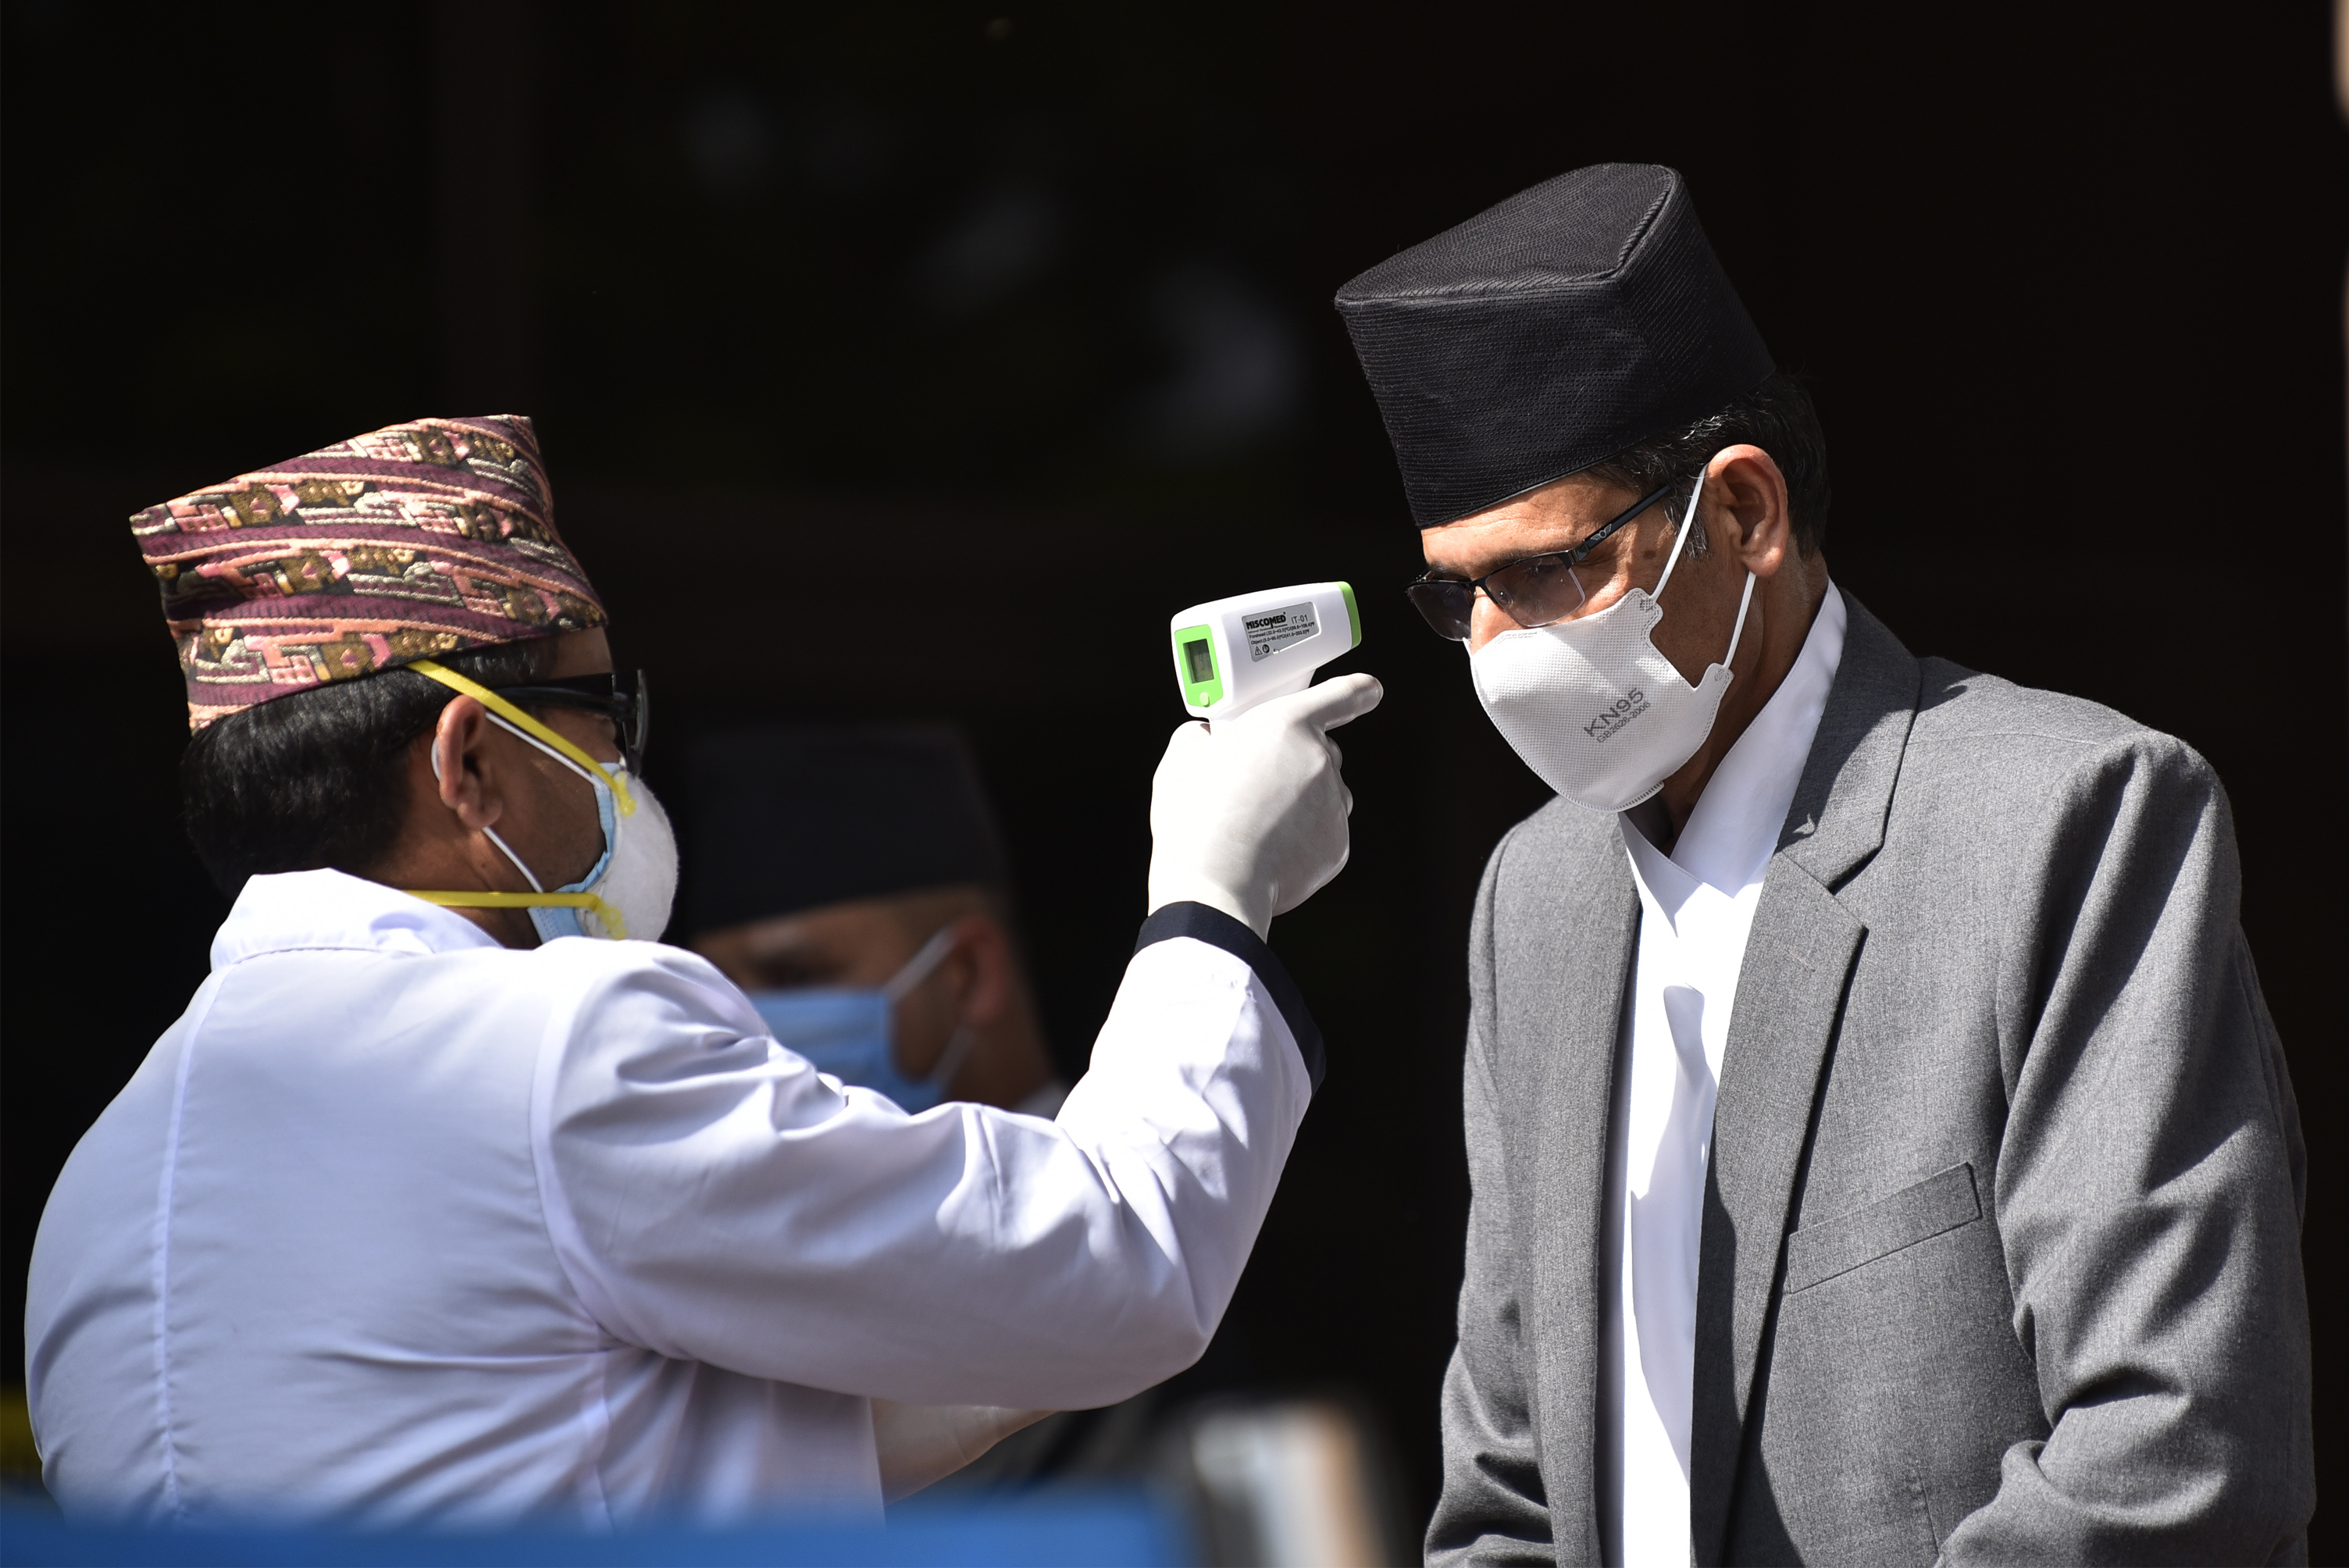 A Nepalese Health personnel in protective gear check the body temperature of Speaker of the House of Representatives, Agni Prasad Sapkota using thermal gun during the announcement of the new government's budget for the fiscal year 2020/2021 at Federal Parliament, Kathmandu, Nepal on Thursday, May 28, 2020. (Photo by Narayan Maharjan/NurPhoto via Getty Images)